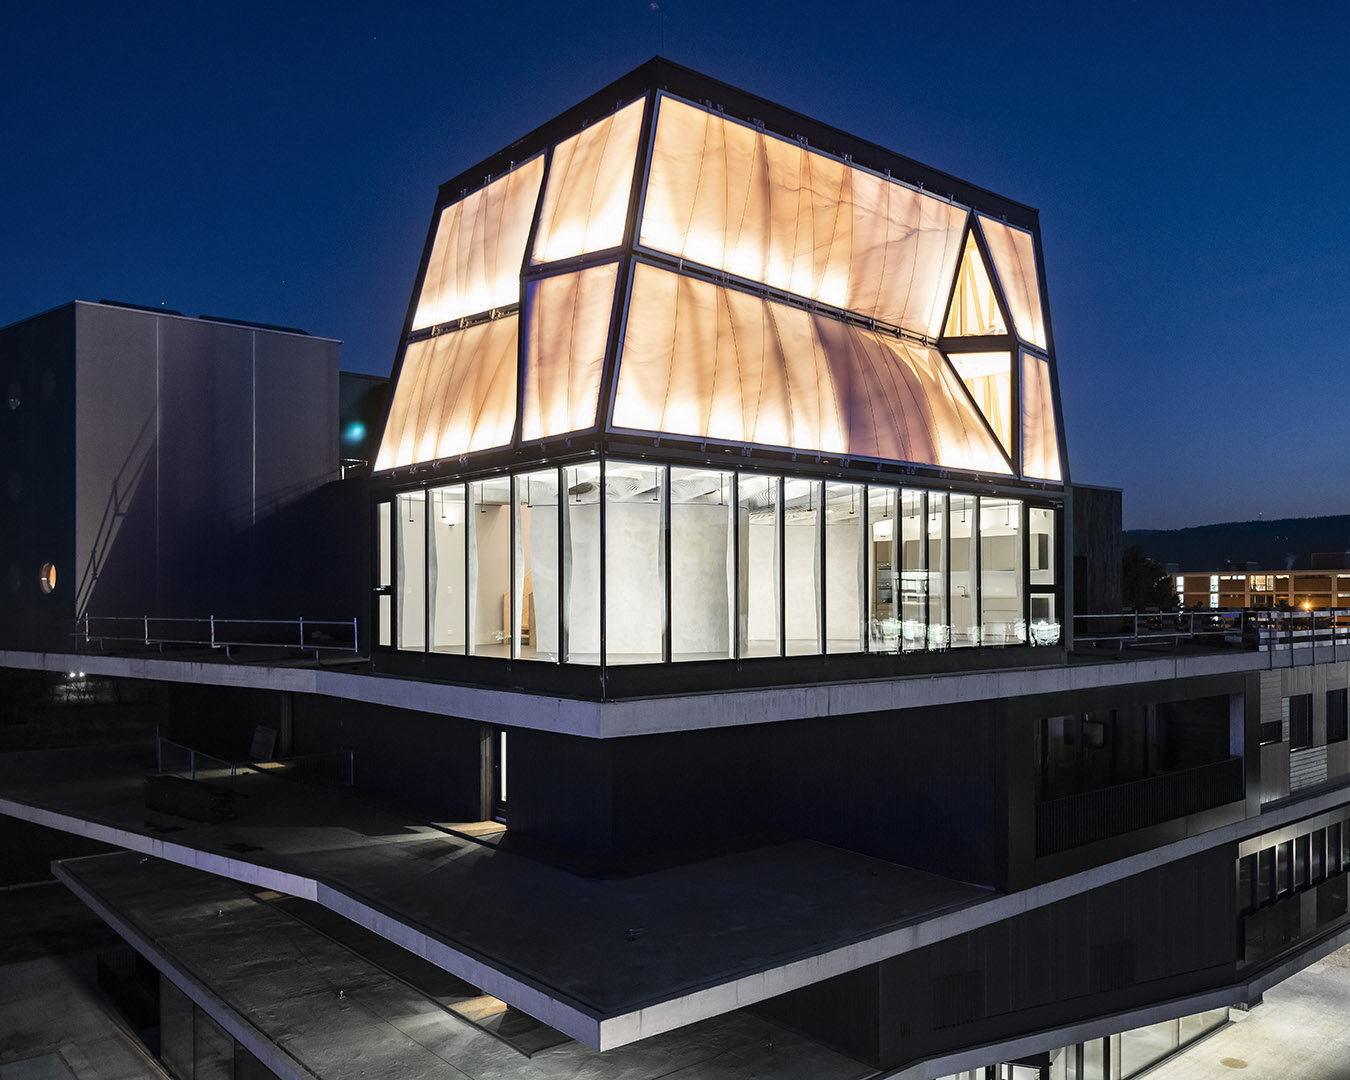 The DFAB House in Switzerland, the first inhabitable house built entirely with digital tools and robots. Photo by Roman Kelller, courtesy of ETH Zurich